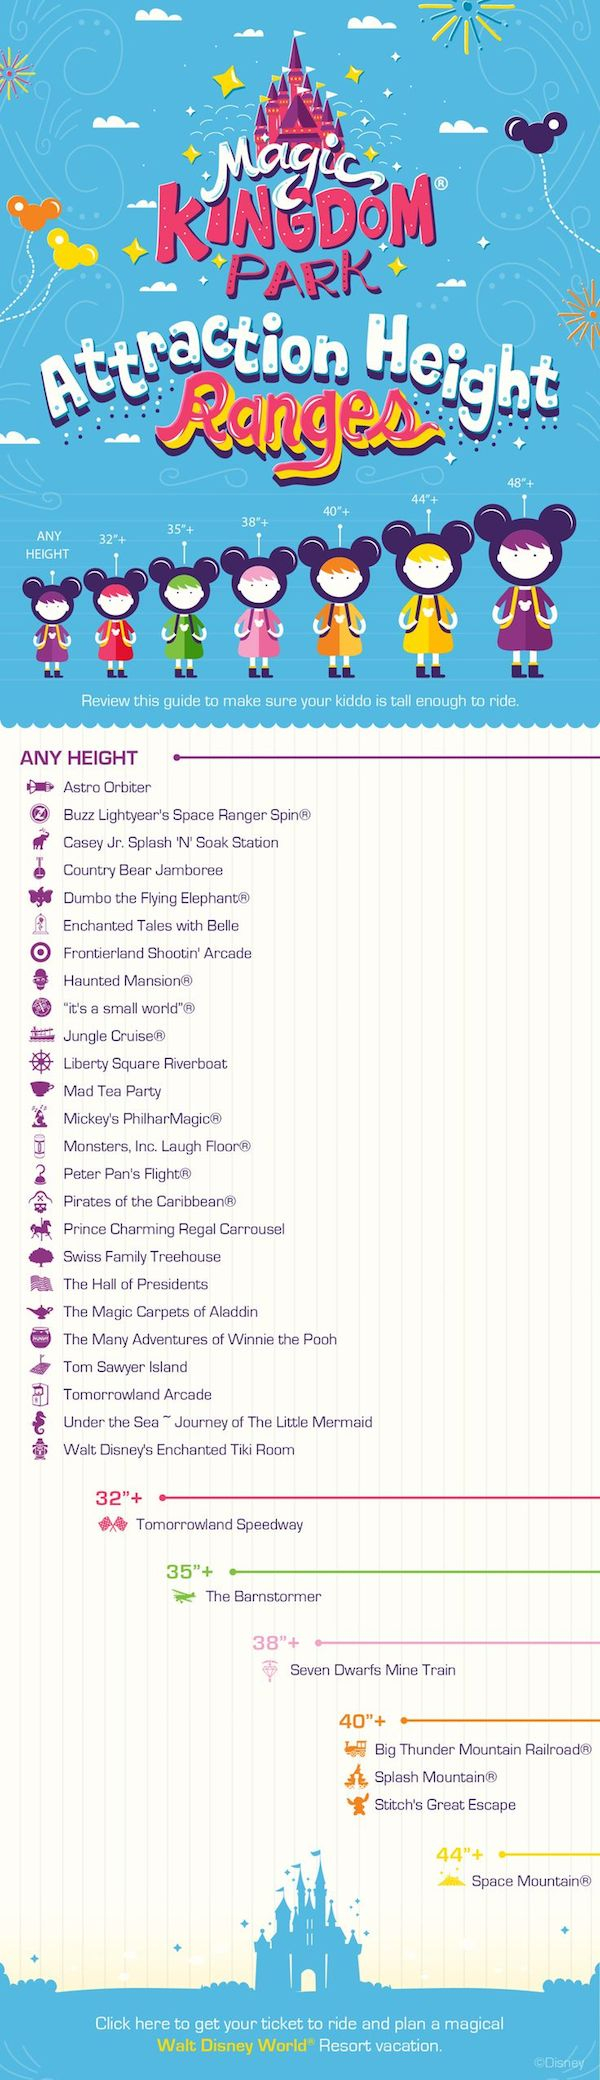 Disney World Ride Checklist 2021